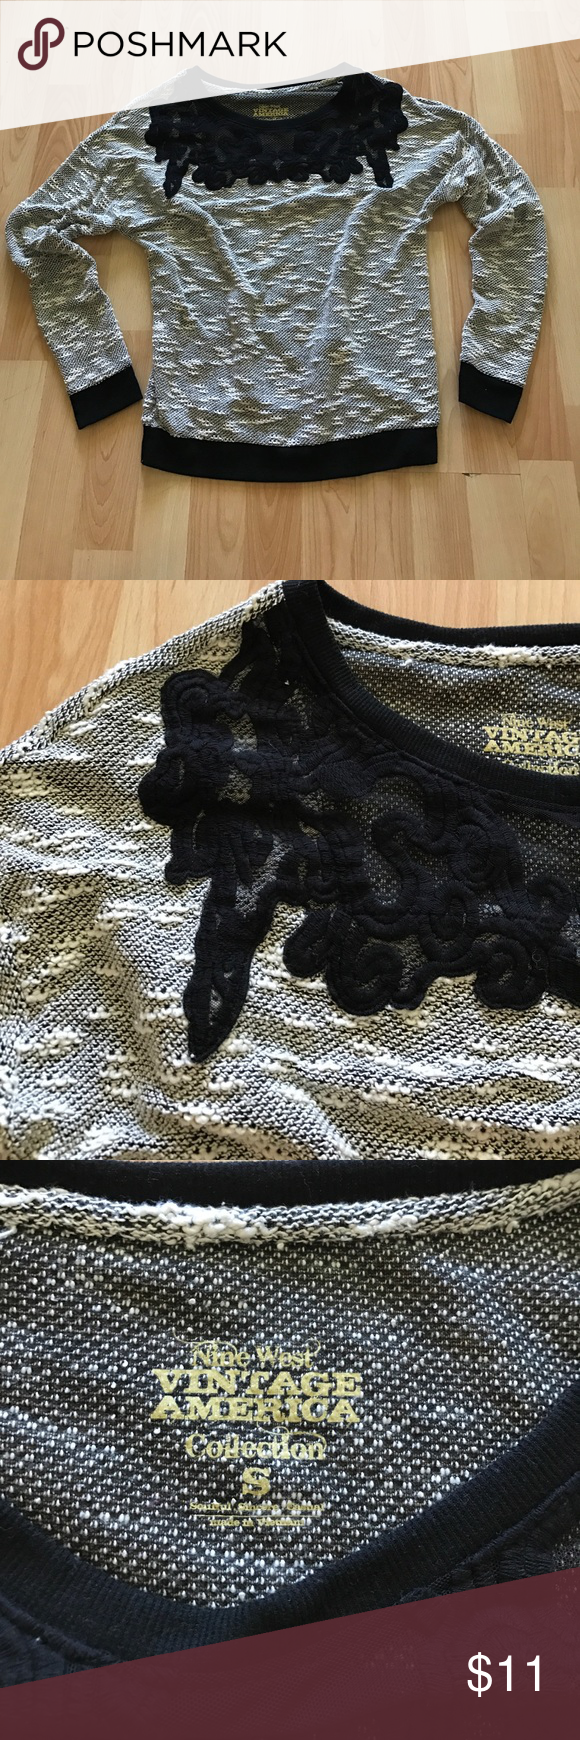 Nine West Vintage America Collection black Top S Nine West vintage America collection top.  Size small.  Black and white colors.  Chunky knit/lightweight sweater.  Beautiful black lace neckline design.  Long sleeve. Nine West Tops